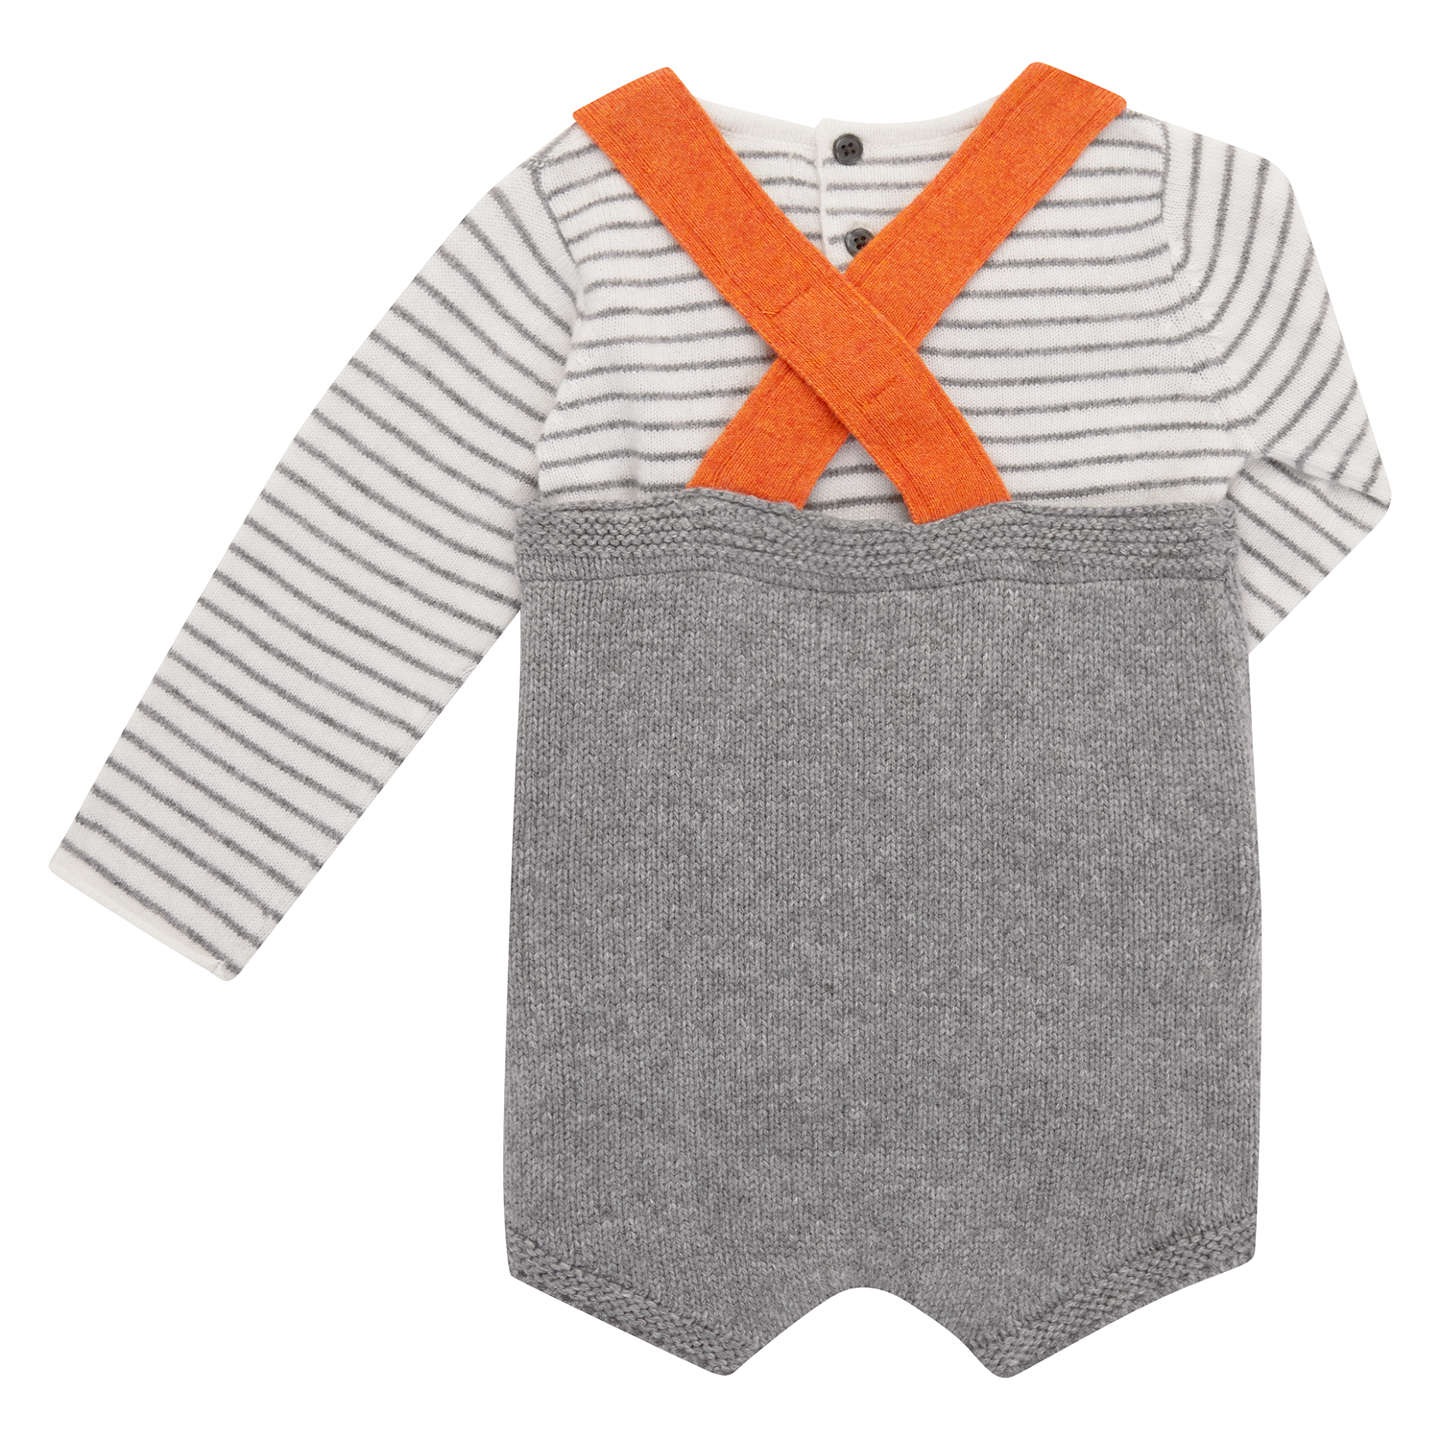 BuyJohn Lewis Baby Knit Romper with Top, Grey, 3-6 months Online at johnlewis.com